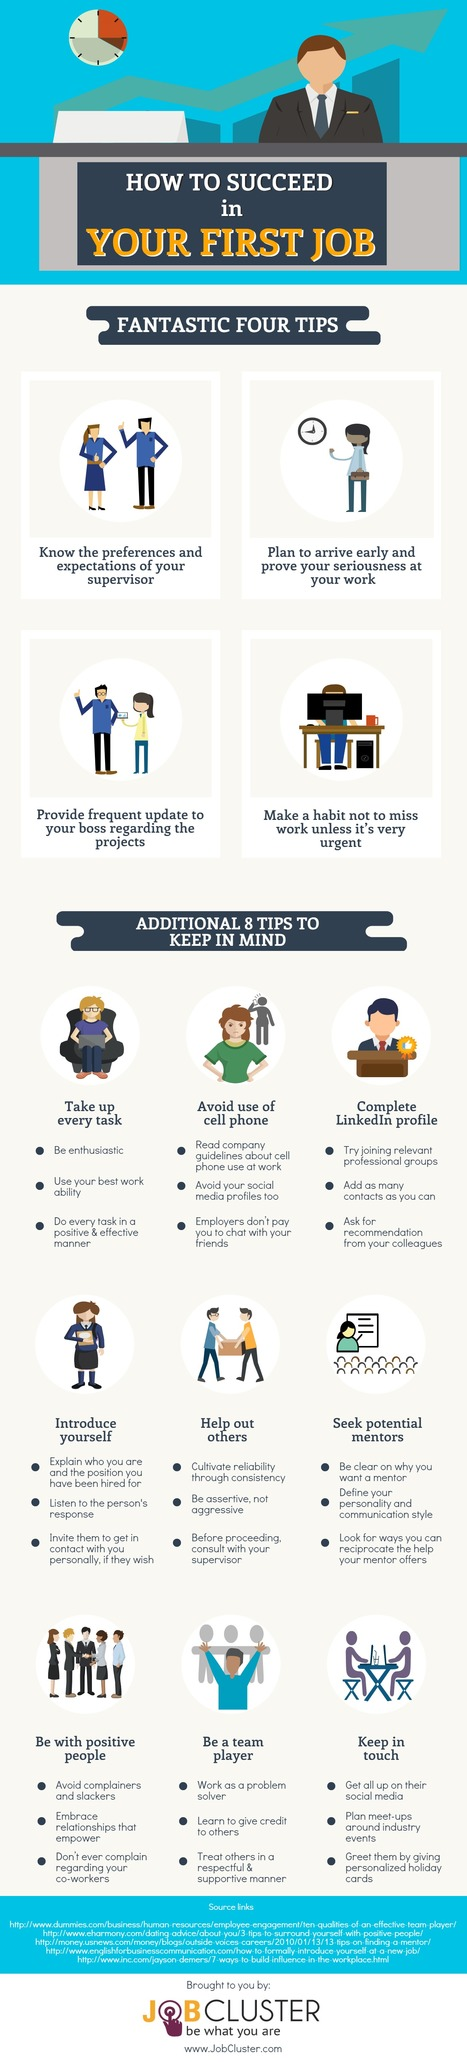 14 Tips for Your First Job- Infographic | Latest Career News & Advice | Scoop.it